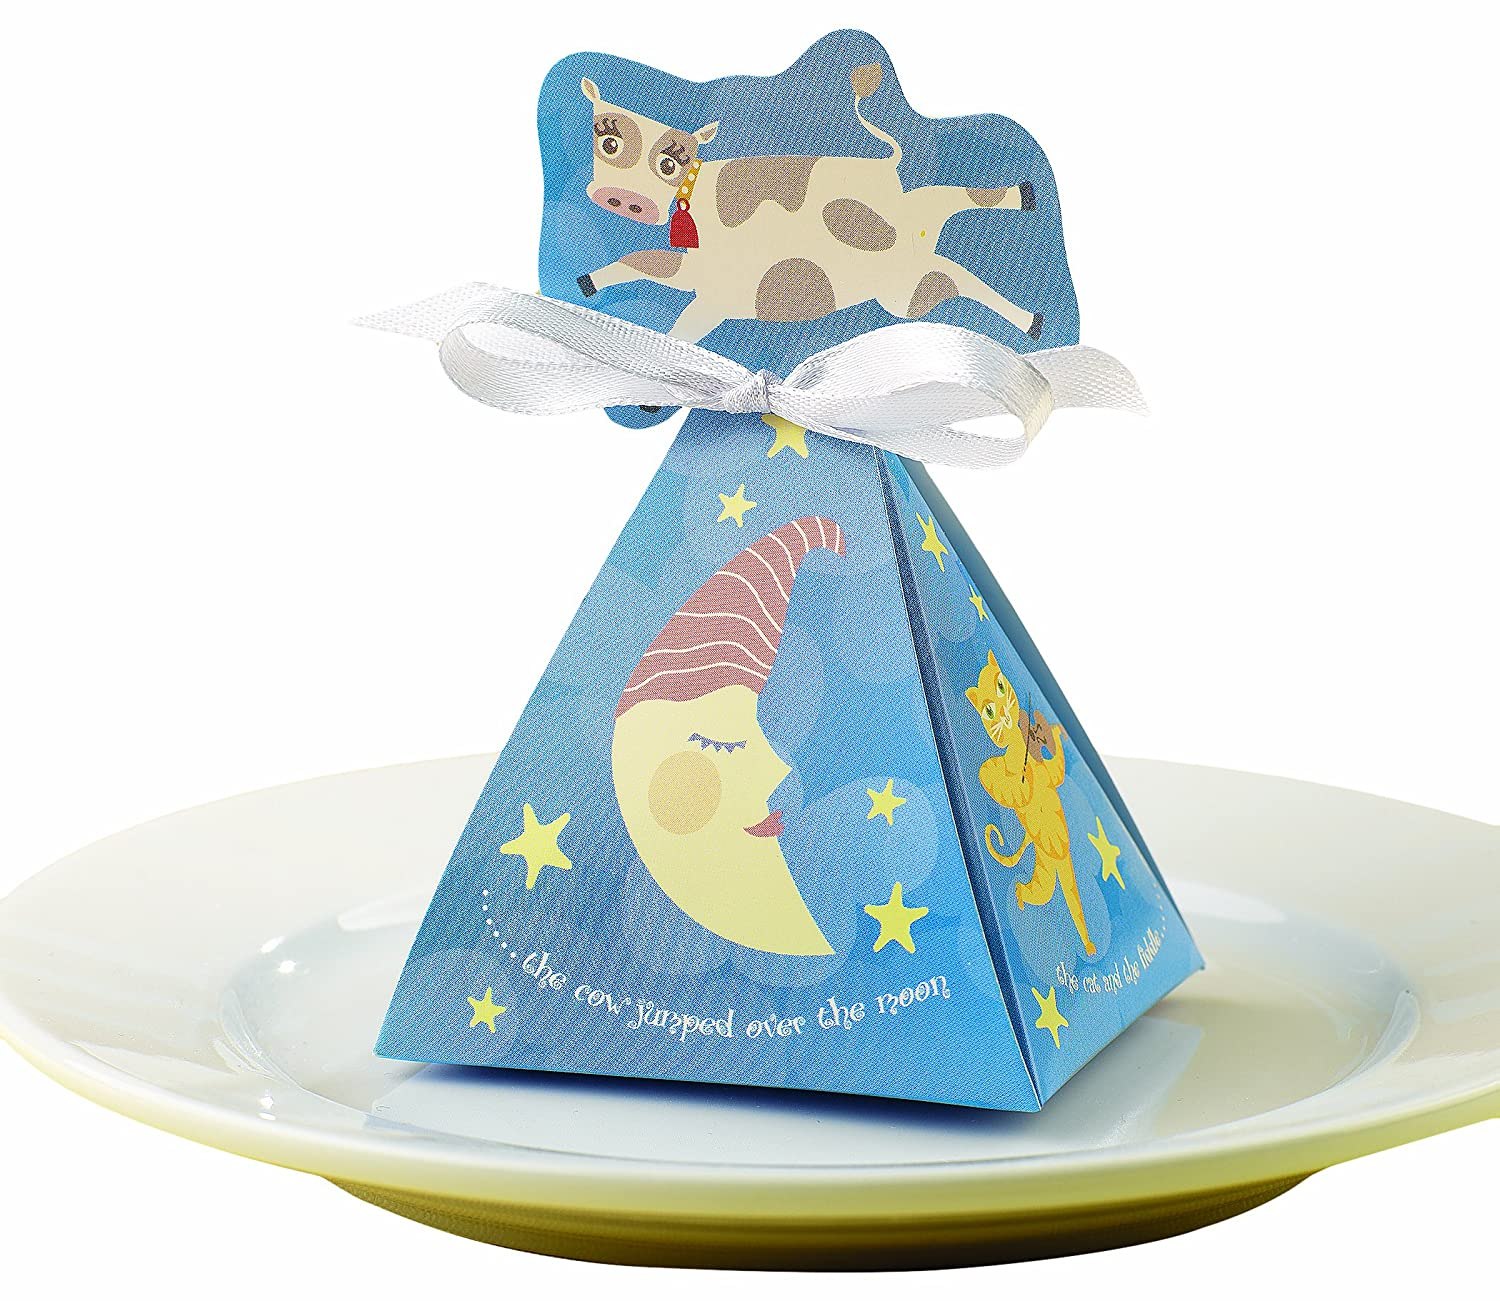 Baby shower favor boxes and bags uk : Boy baby shower party favor boxes and bags mania